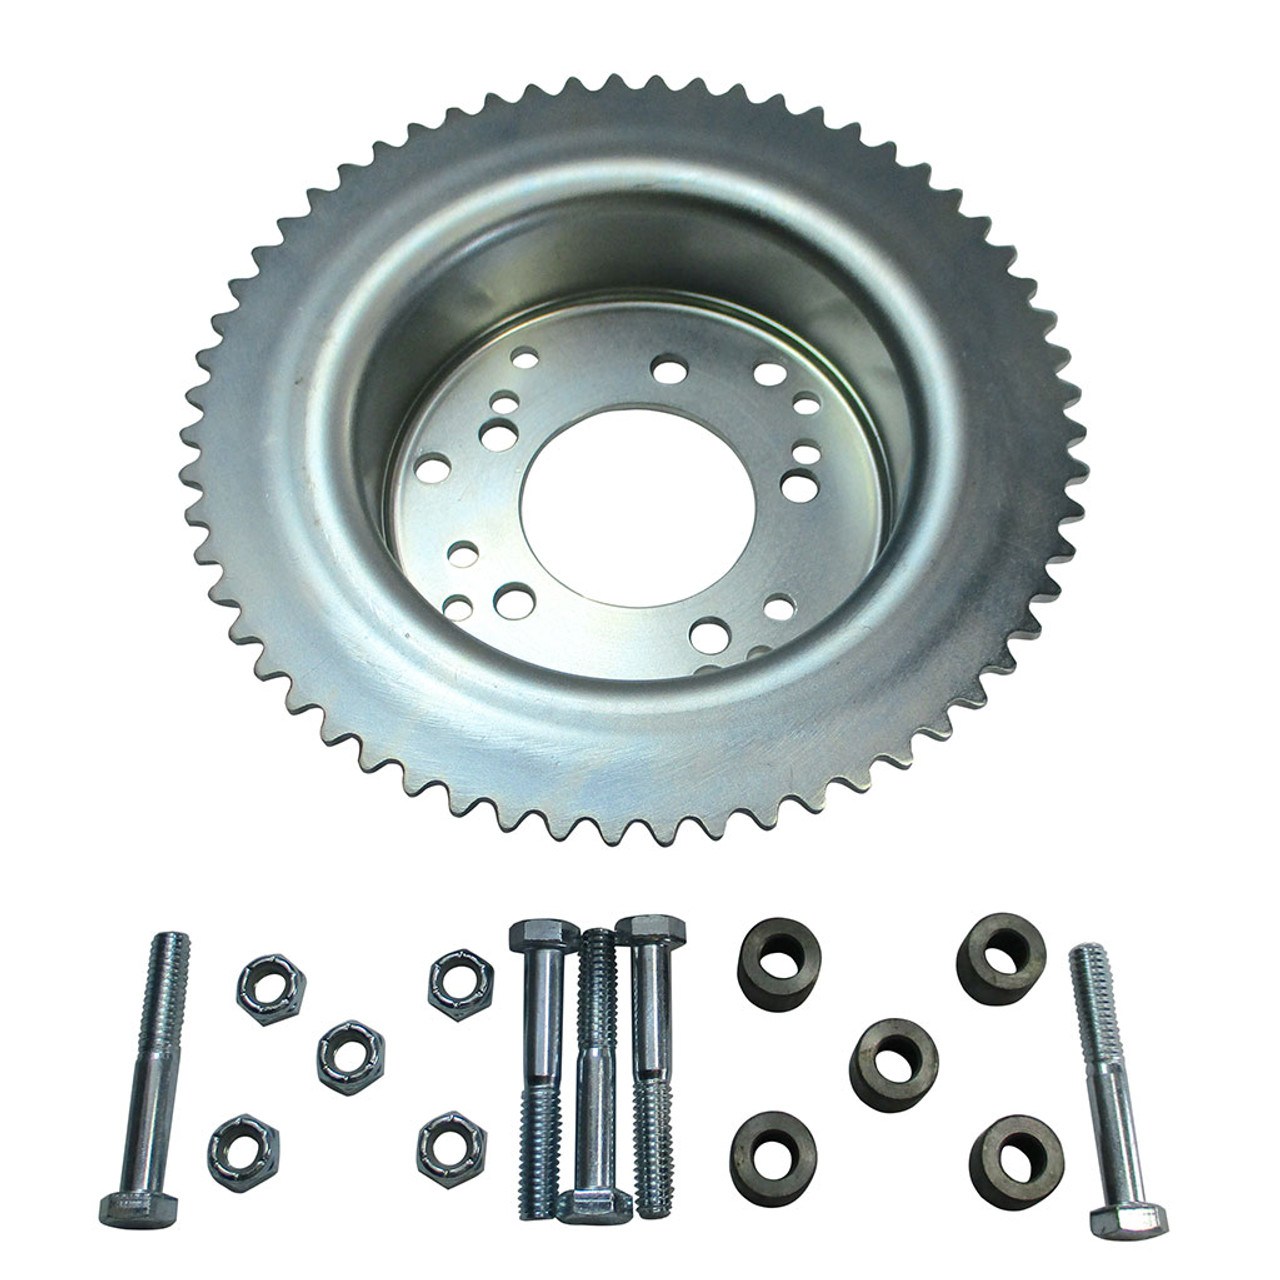 """60 Tooth 35 Chain Sprocket w/4-1/2"""" Drum for Astro Wheel w/ Hardware"""